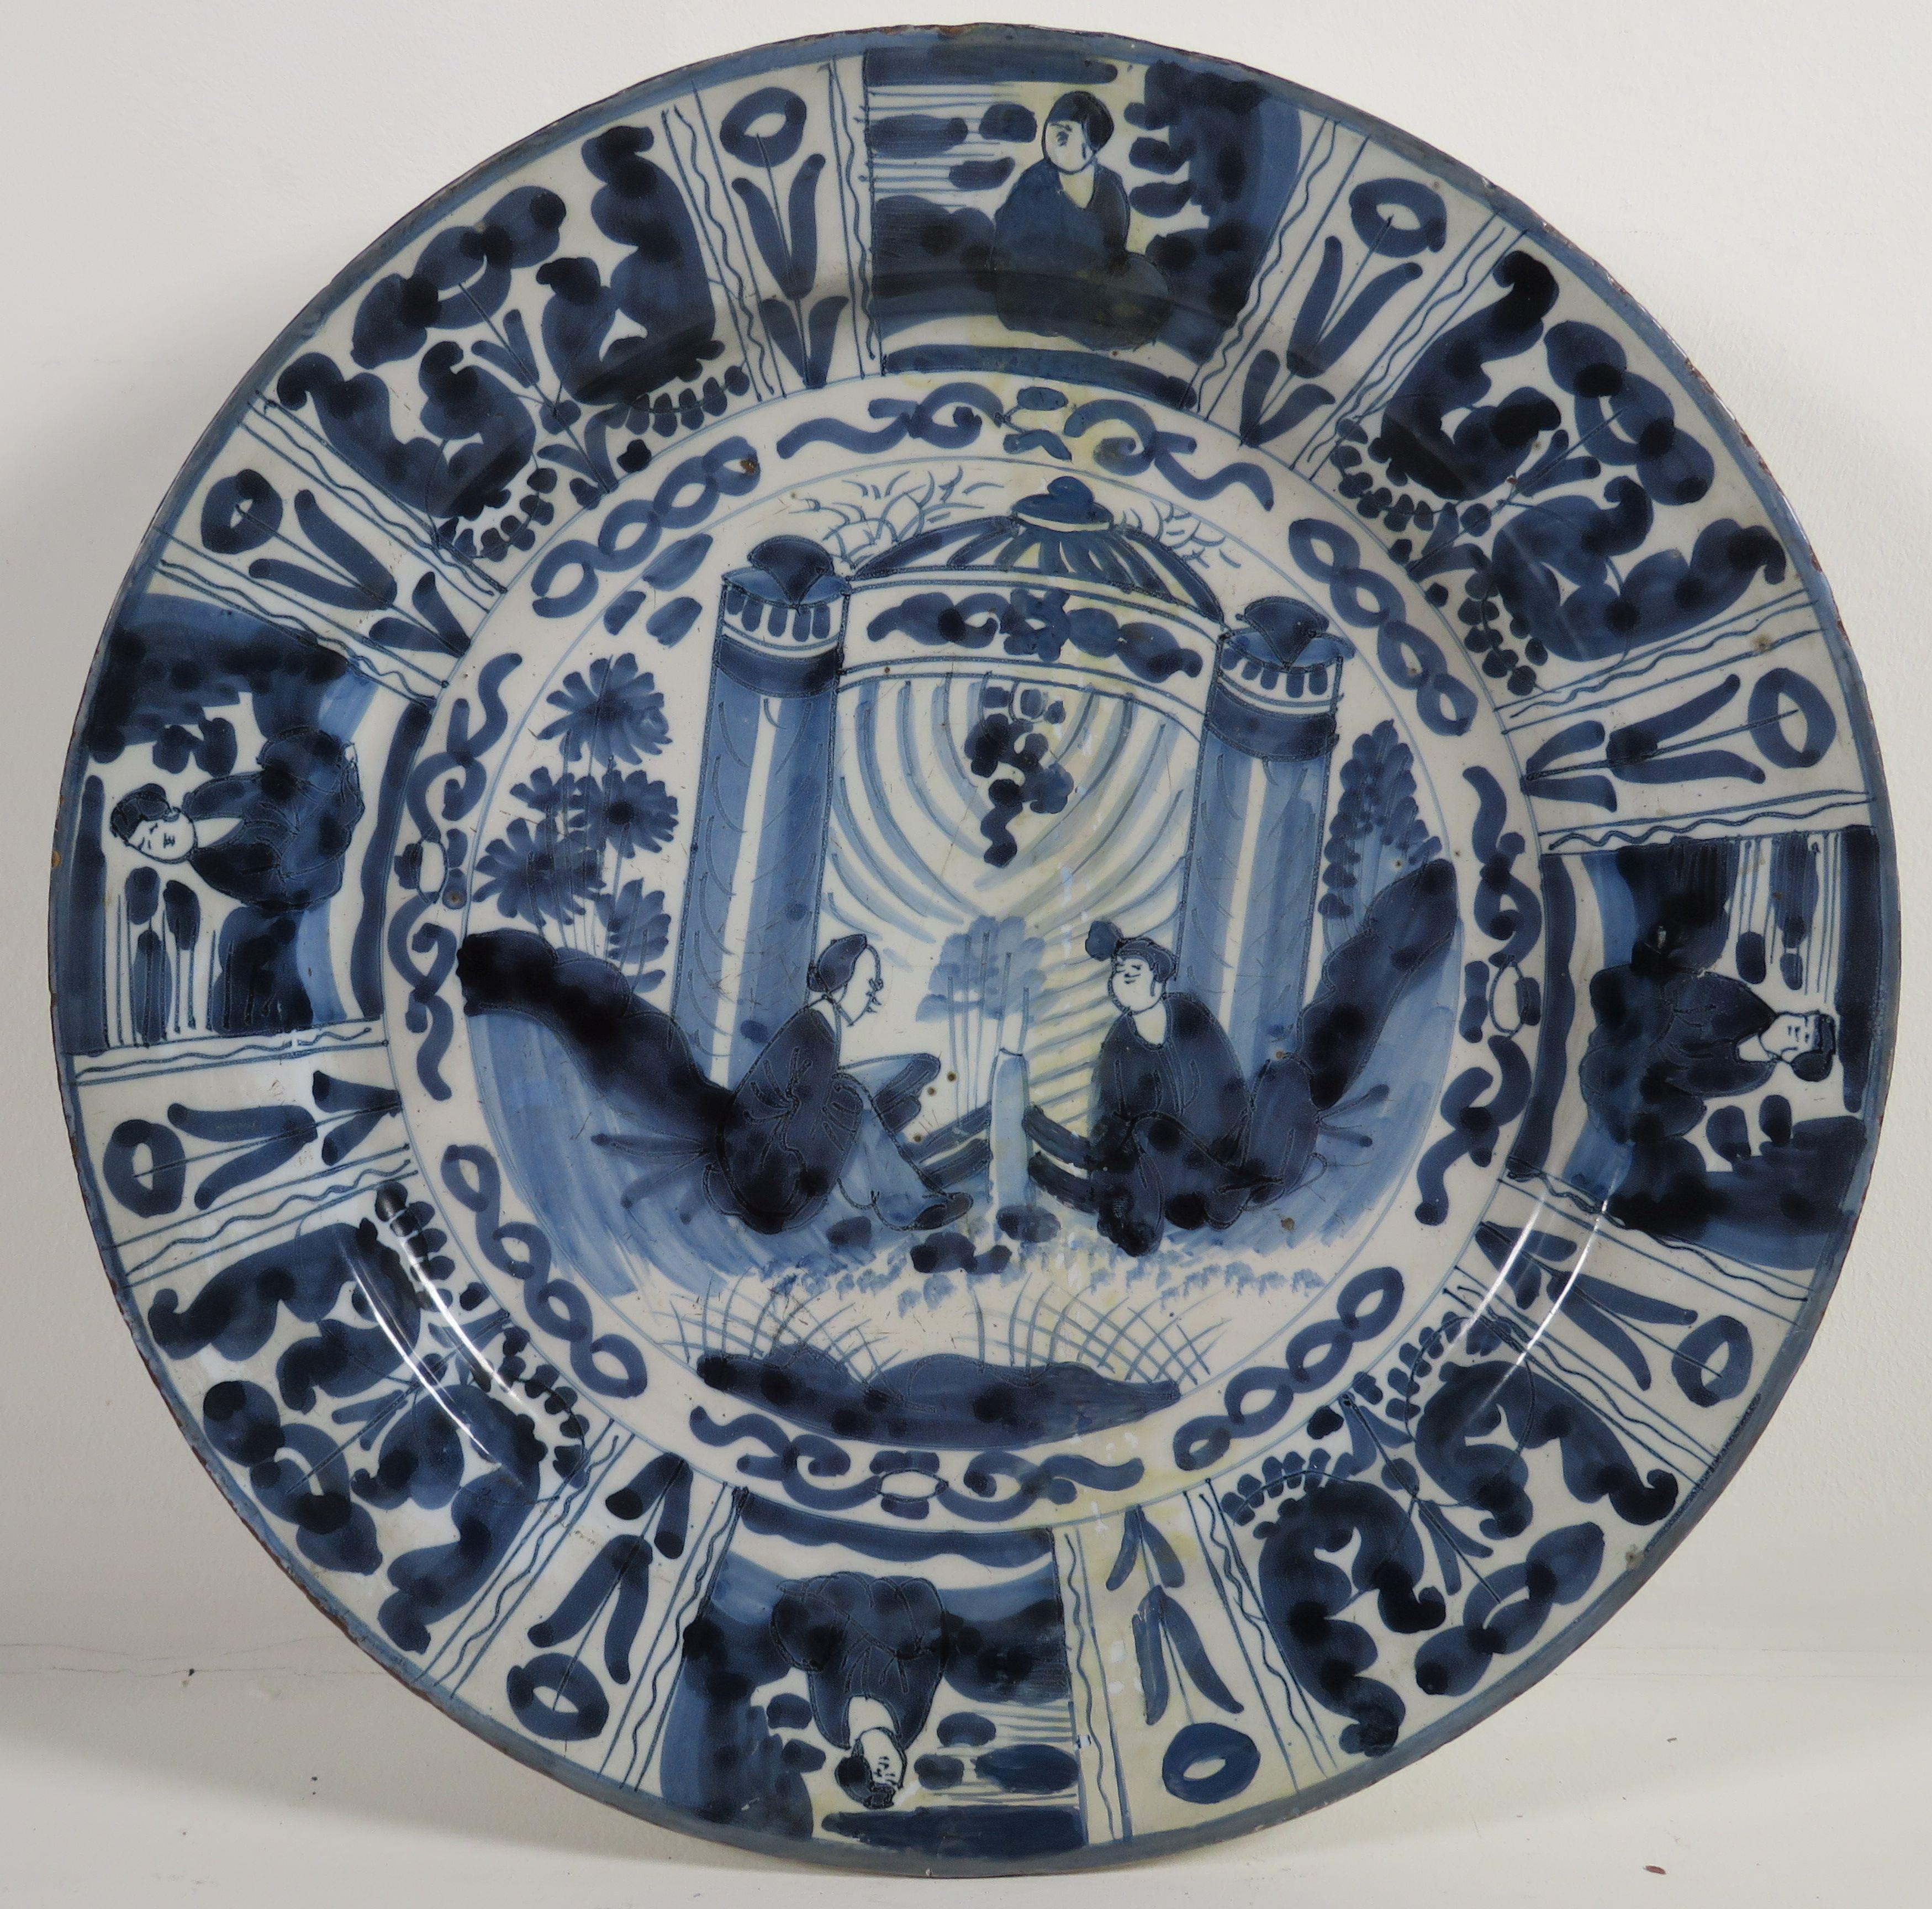 Blau Weiß Teller Delft 18 Jahrhundert Jewellery Antiques And Art 2018 02 15 Realized Price Eur 85 Dorotheum